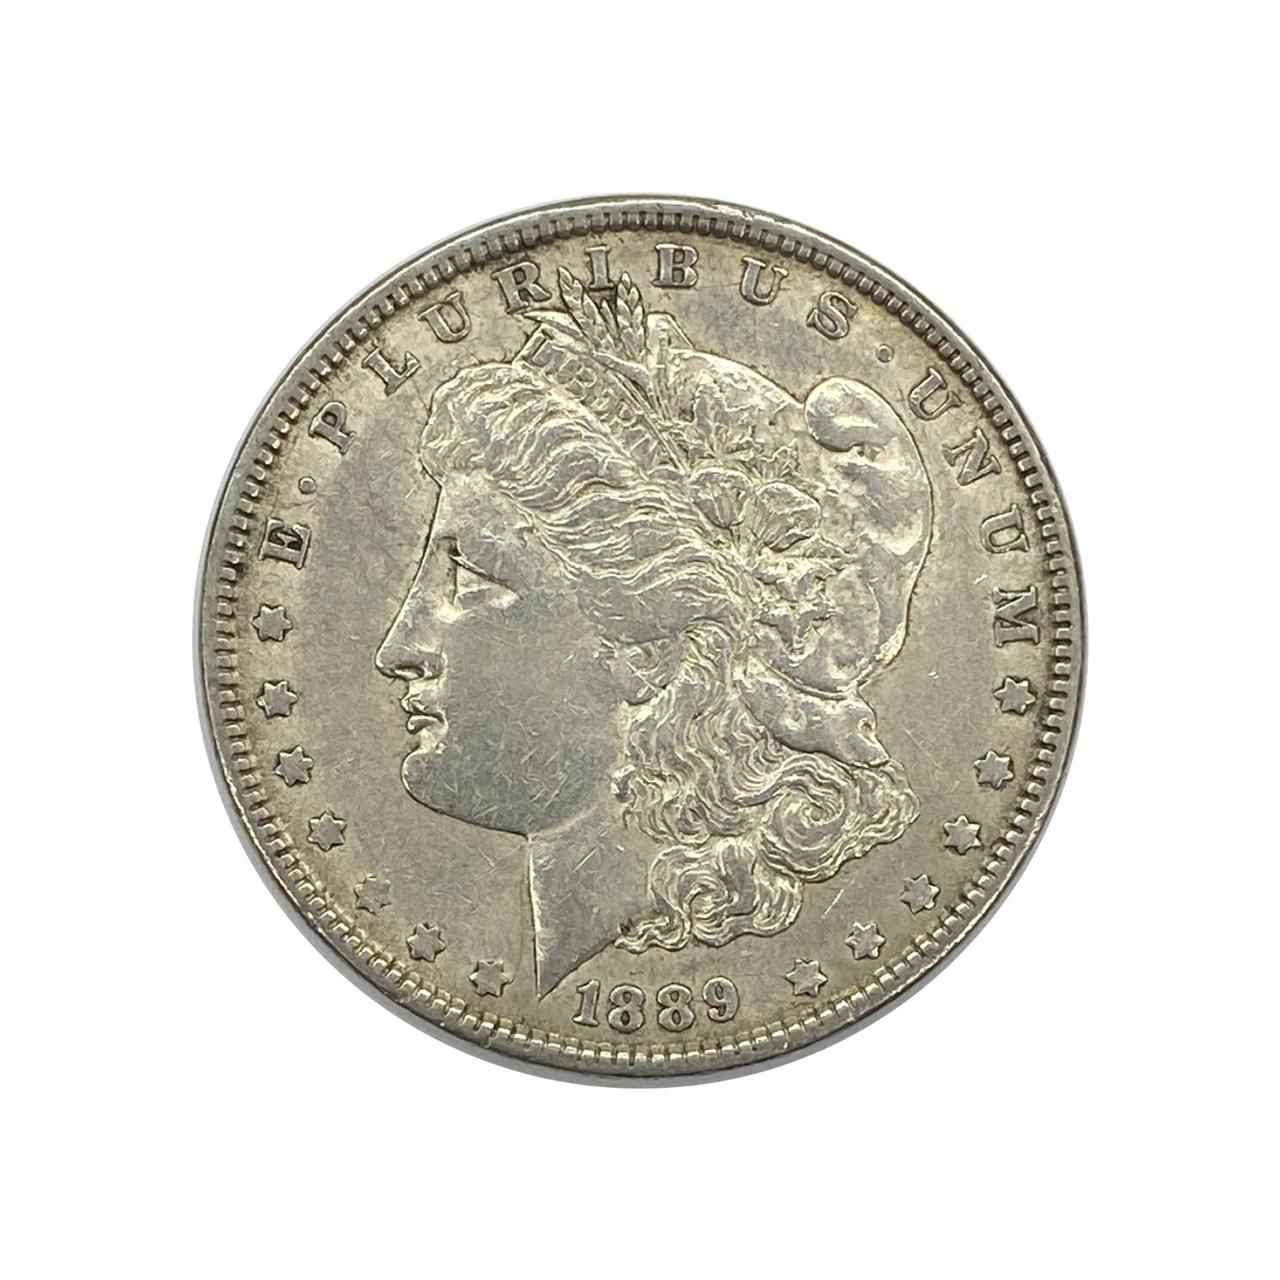 1 Dólar Morgan Dollar-1889